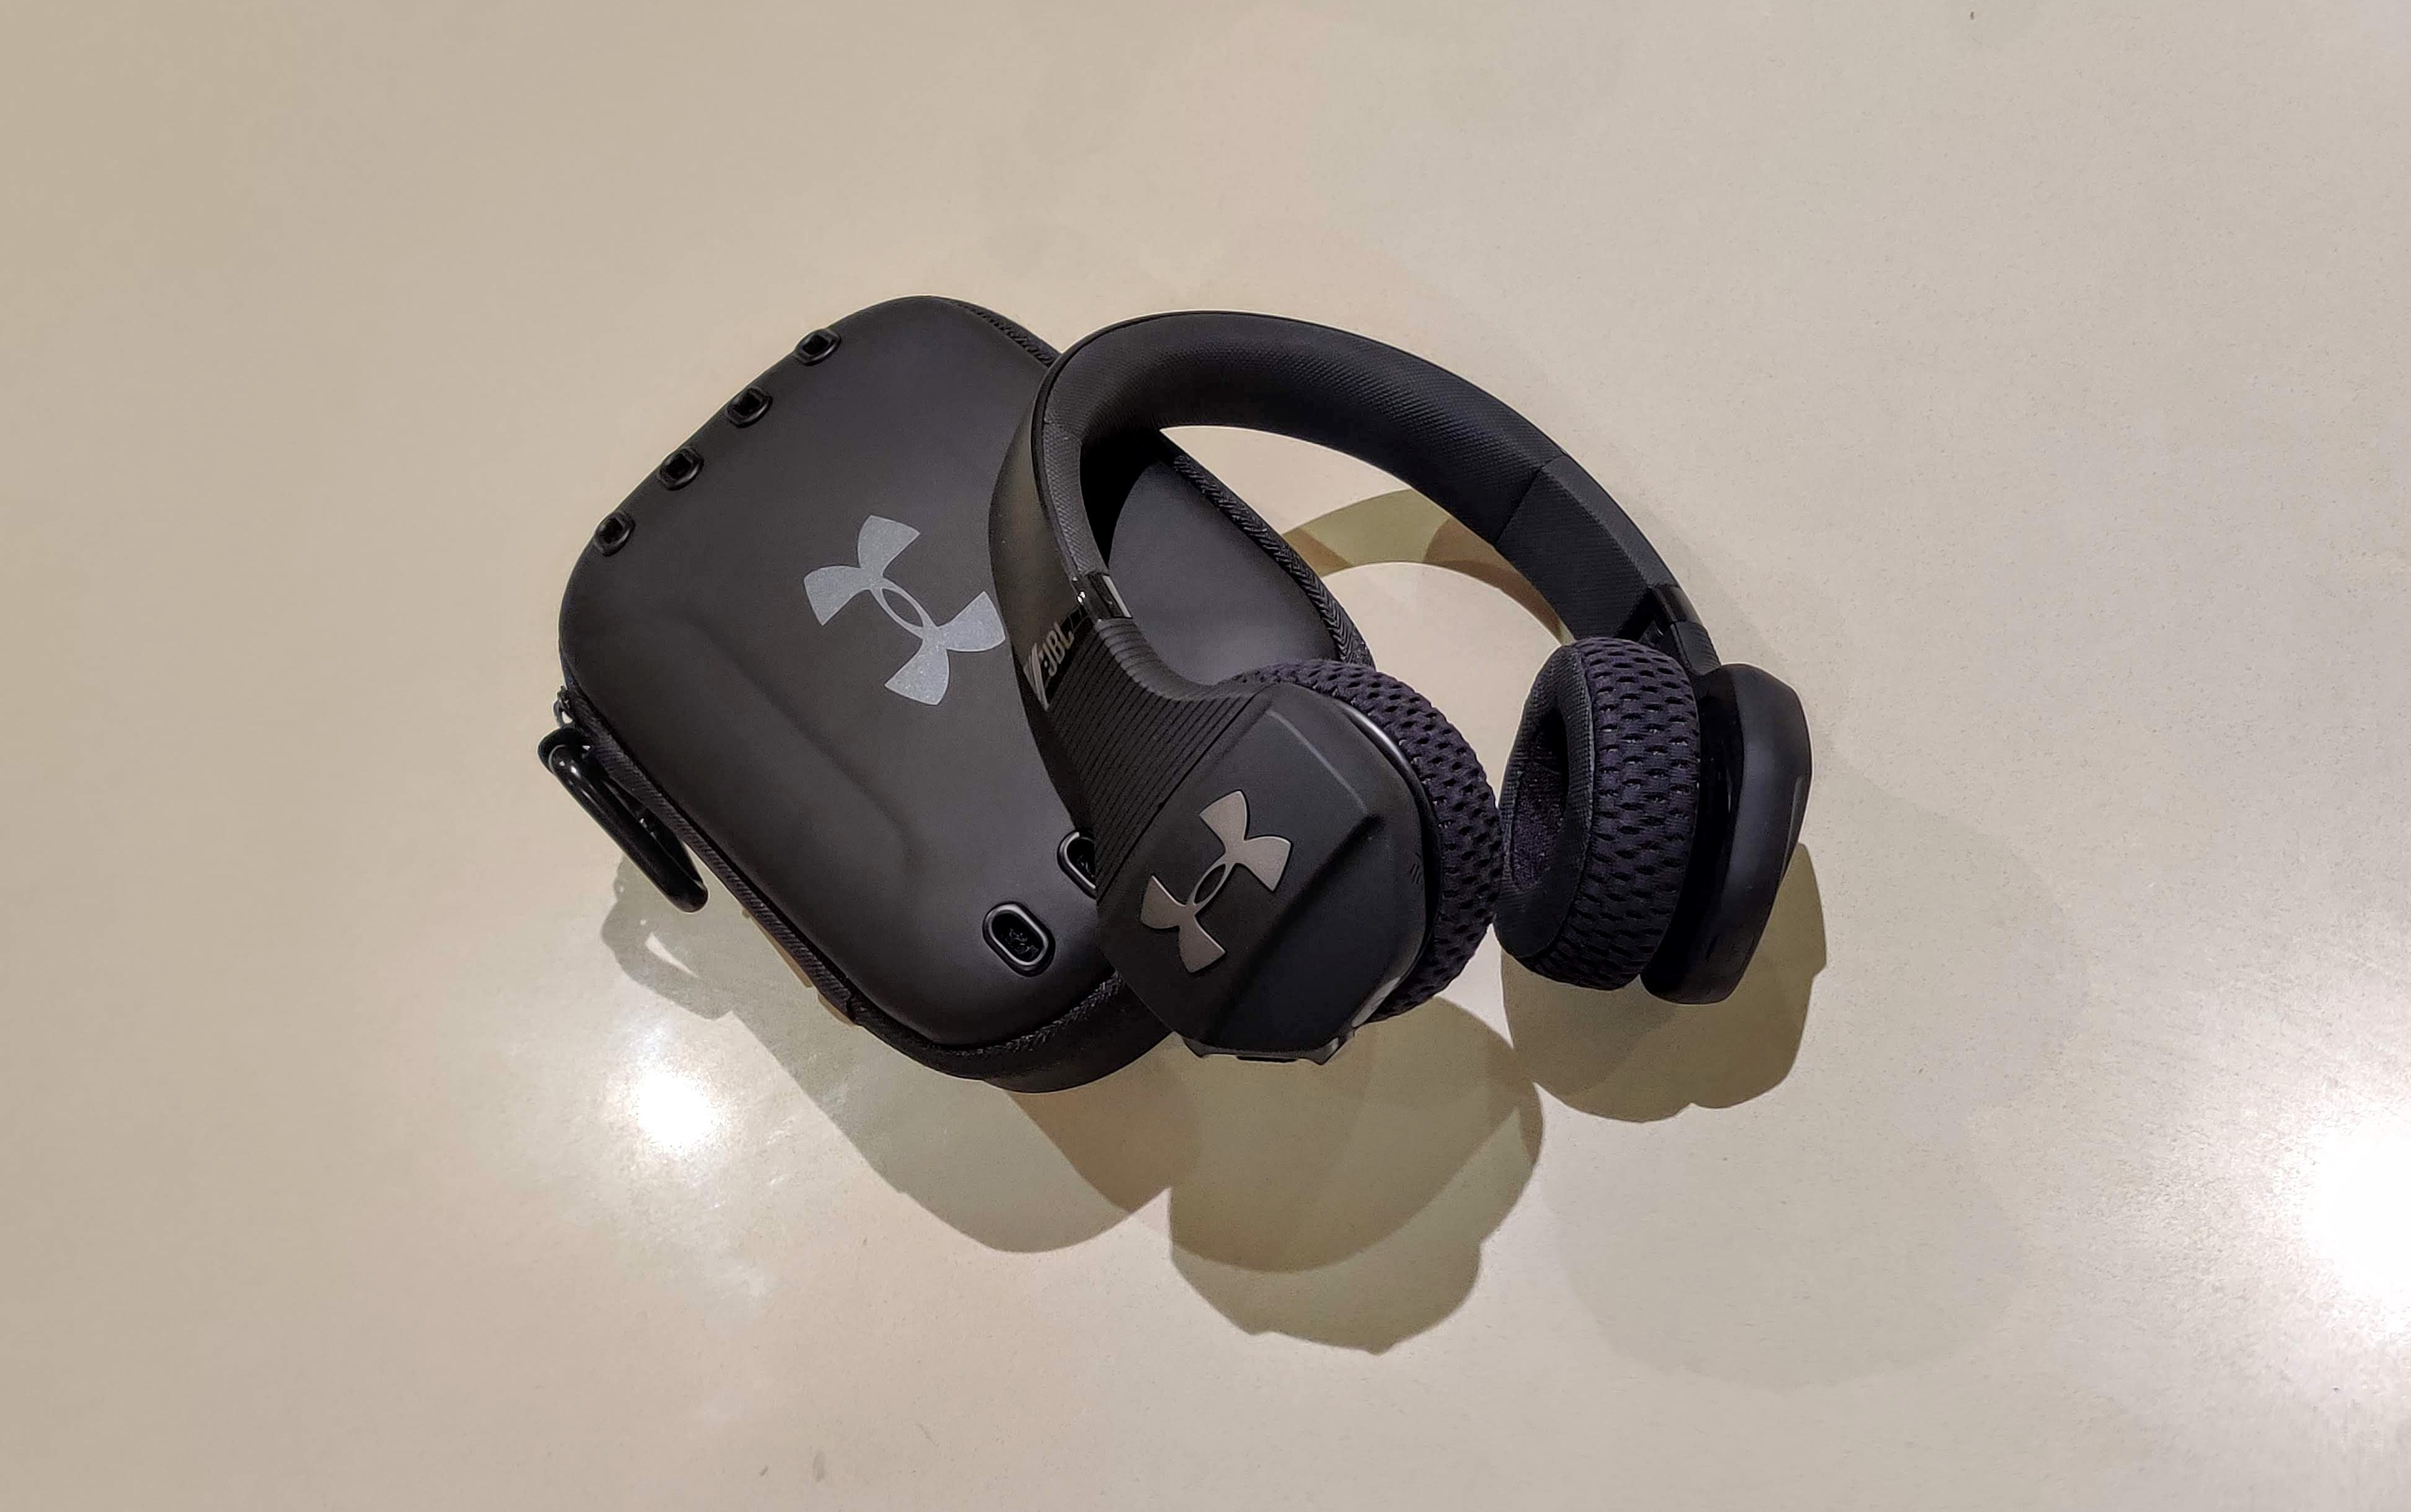 Rama símbolo mitología  Review: Under Armour Sport Wireless Train by JBL - finally some top notch  on-ear exercise headphones - Ausdroid